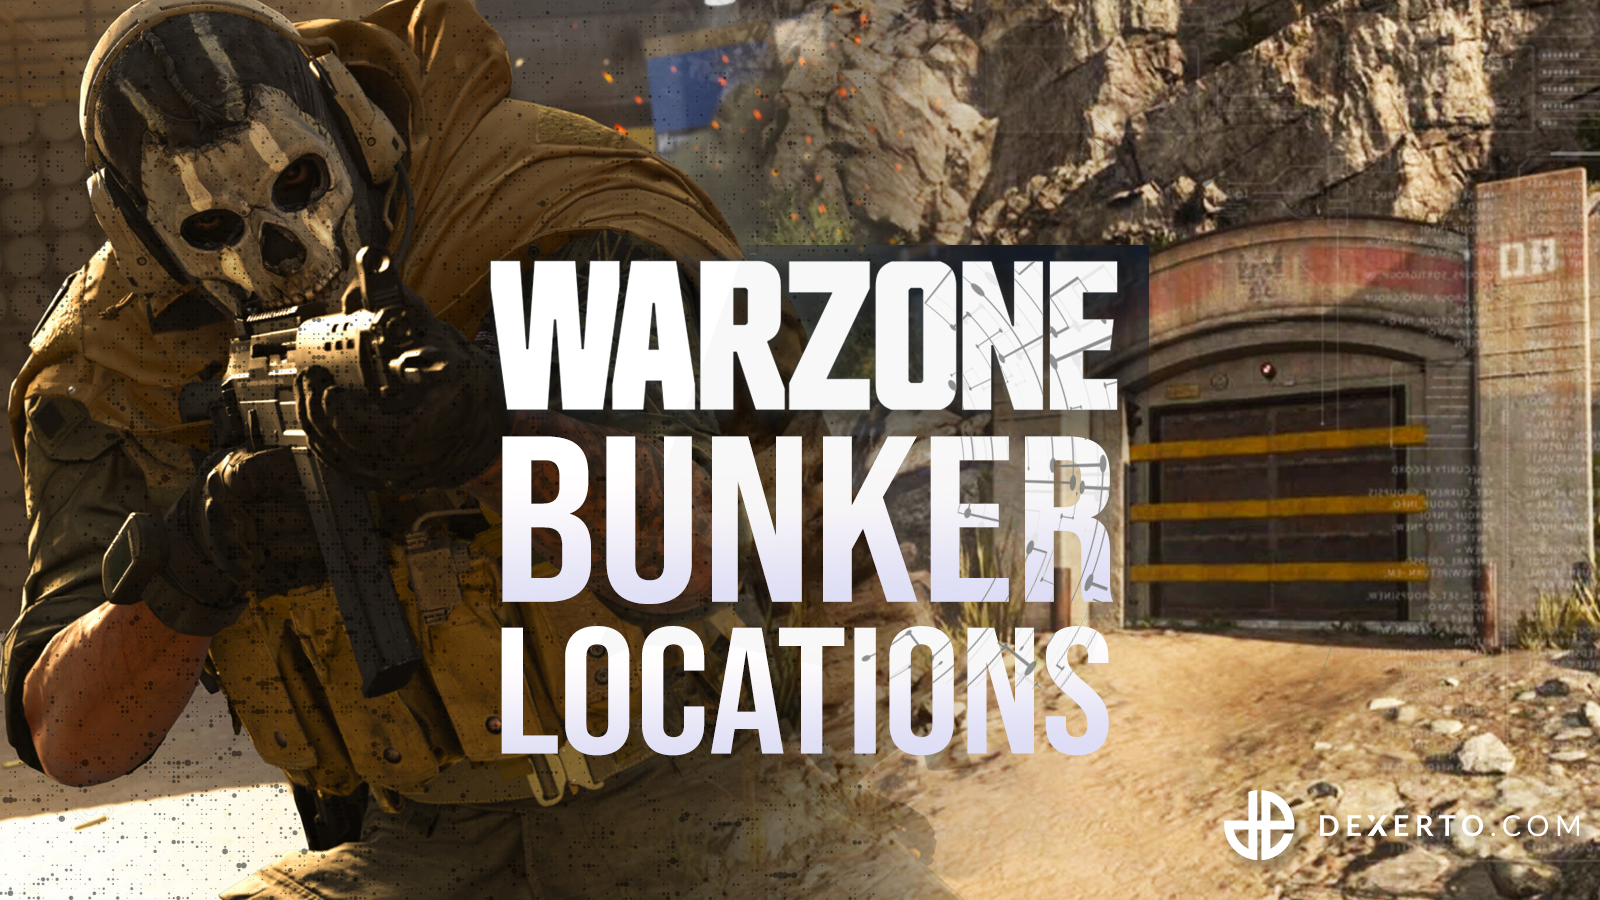 Warzone bunkers